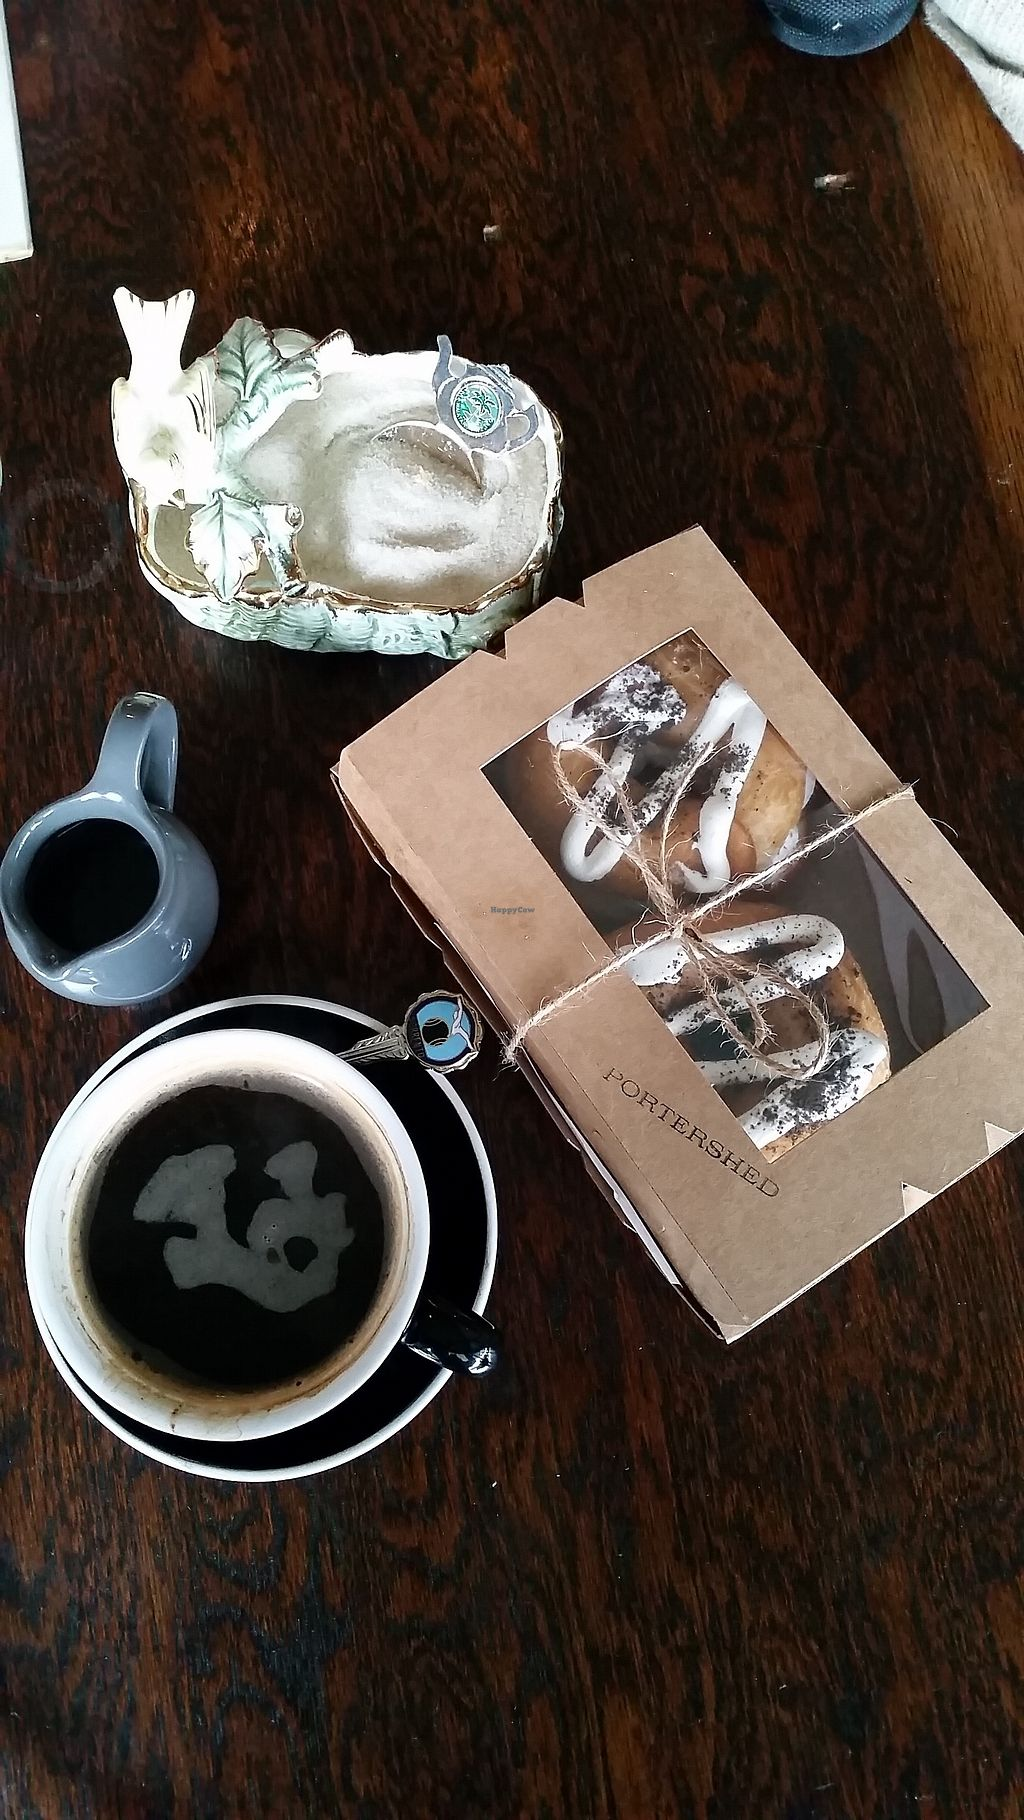 "Photo of Portershed  by <a href=""/members/profile/AndyTheVWDude"">AndyTheVWDude</a> <br/>Fantastic Cookies & Cream Doughnuts boxed for take-out. Seriously good! <br/> September 5, 2017  - <a href='/contact/abuse/image/96516/300988'>Report</a>"